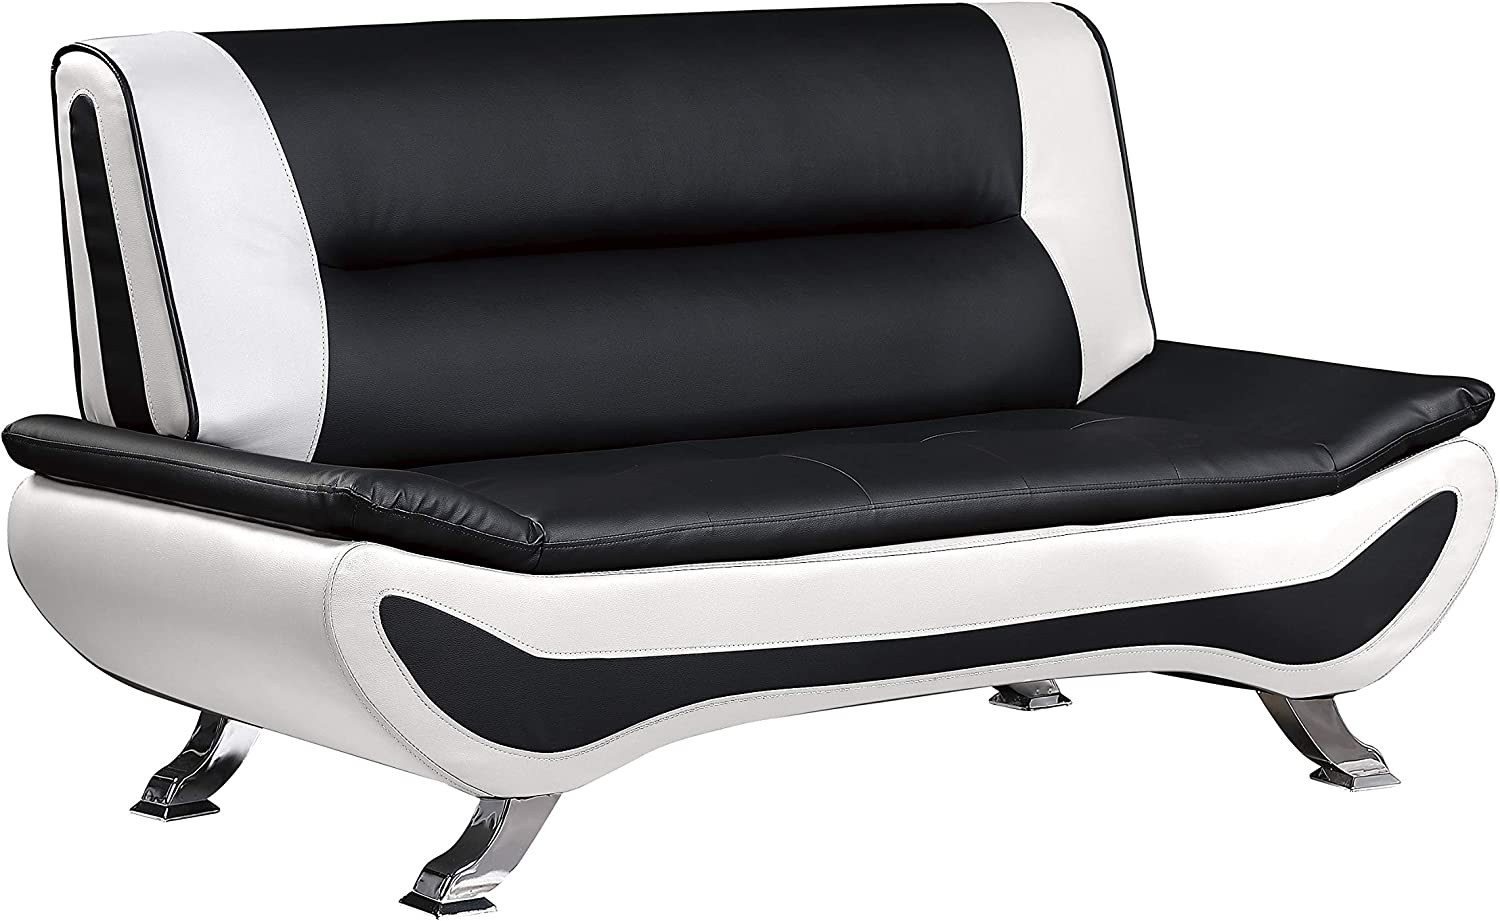 Homelegance Faux Leather Low-Profile Love Seat 63 Black//White